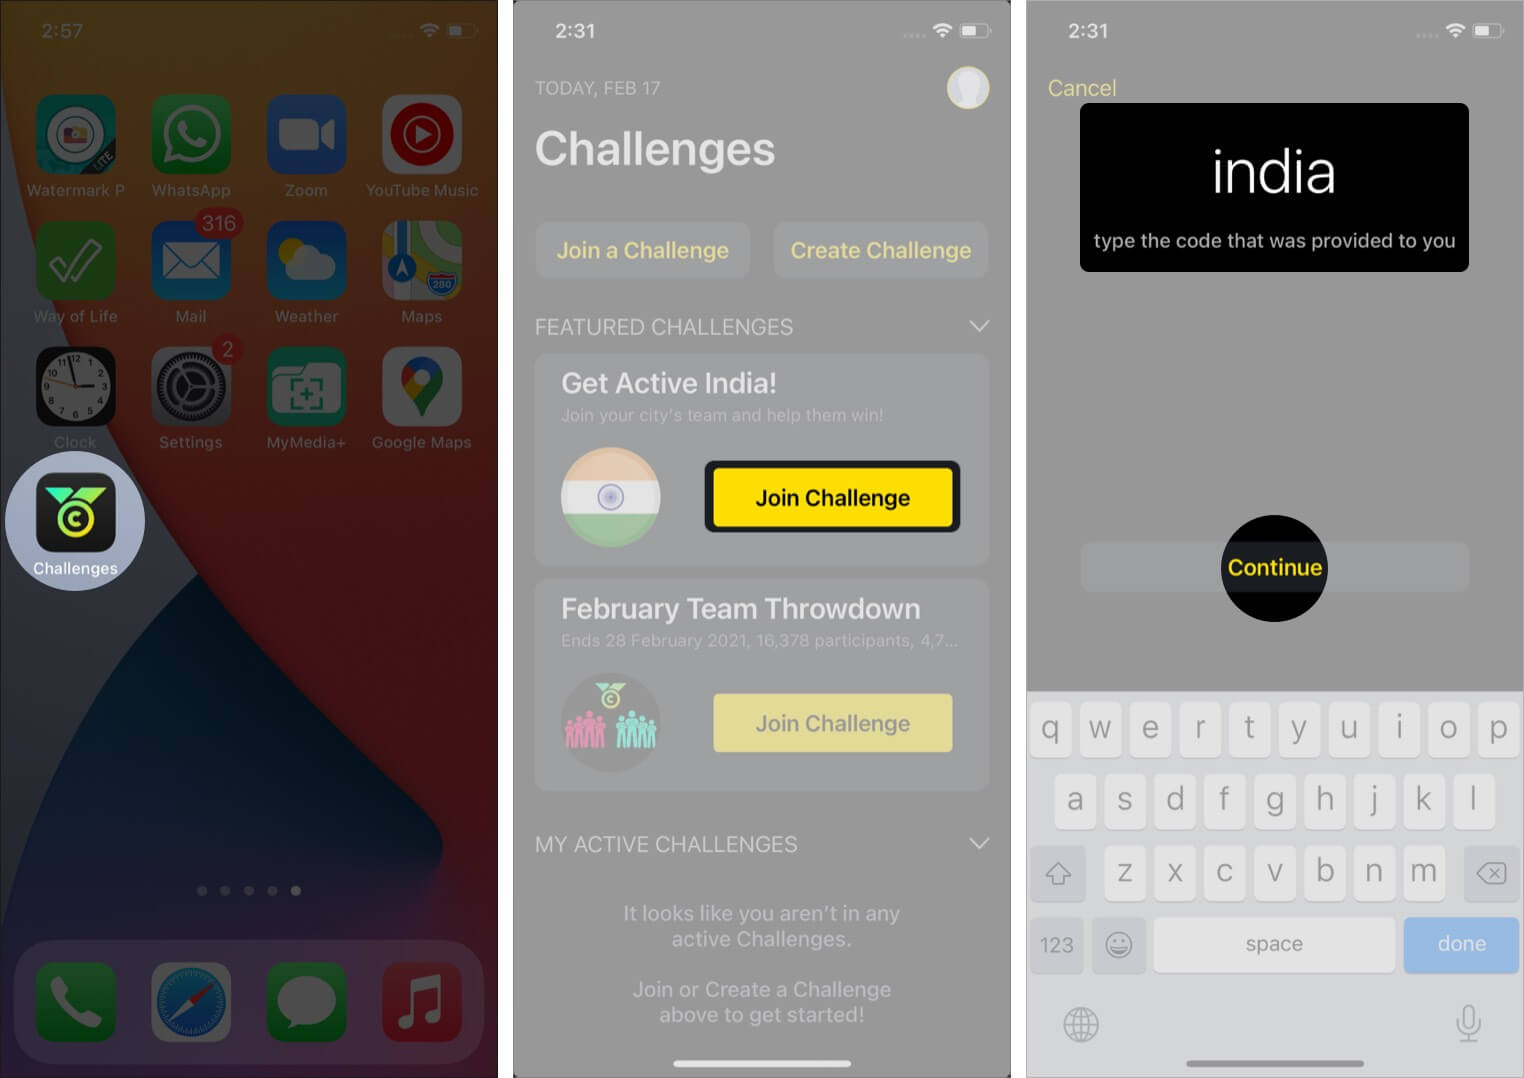 Open Challenges app, Tap Join Challenge, Enter code india and tap Continue